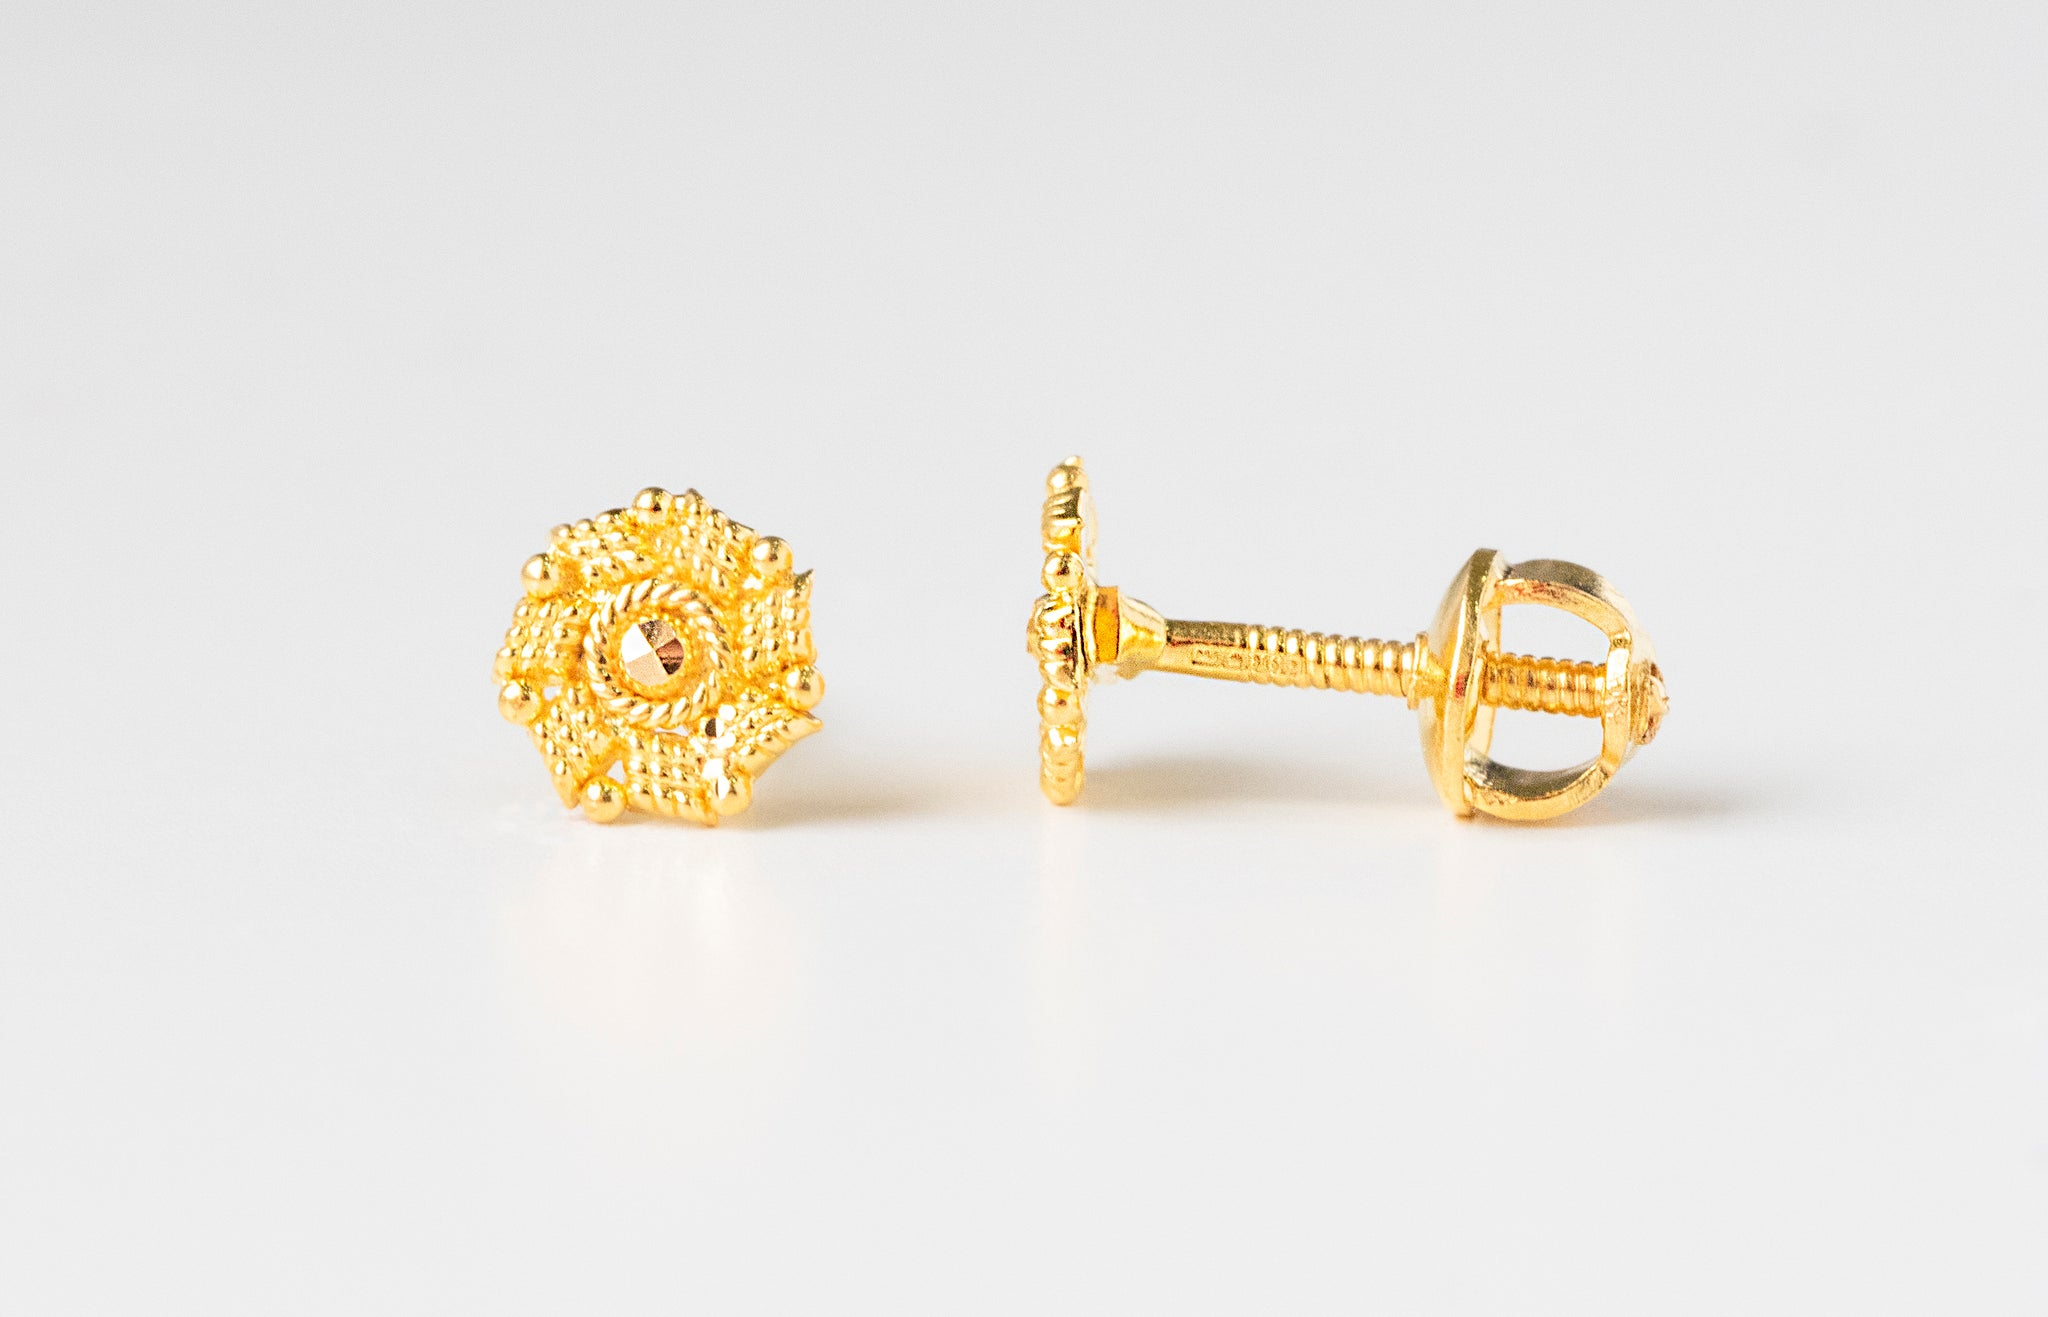 22ct Gold Diamond Cut Design Ear Studs (1.3g) E-7769